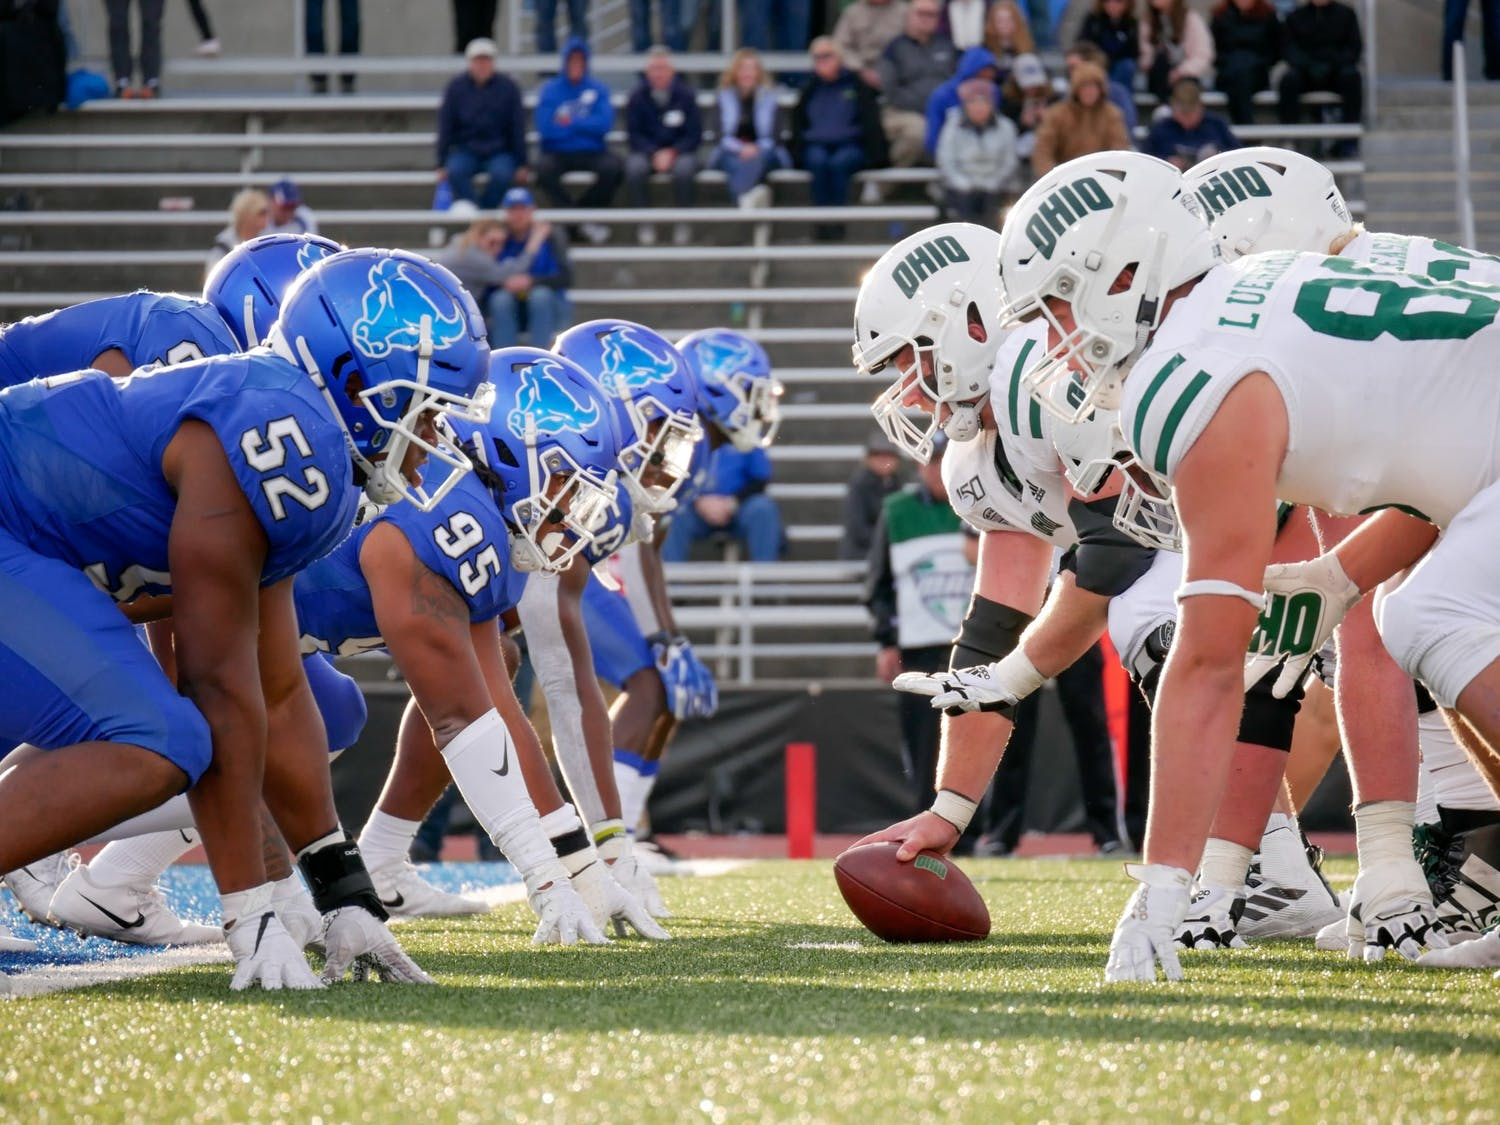 Several former UB Bulls have gone on to play on the gridiron at a professional level.